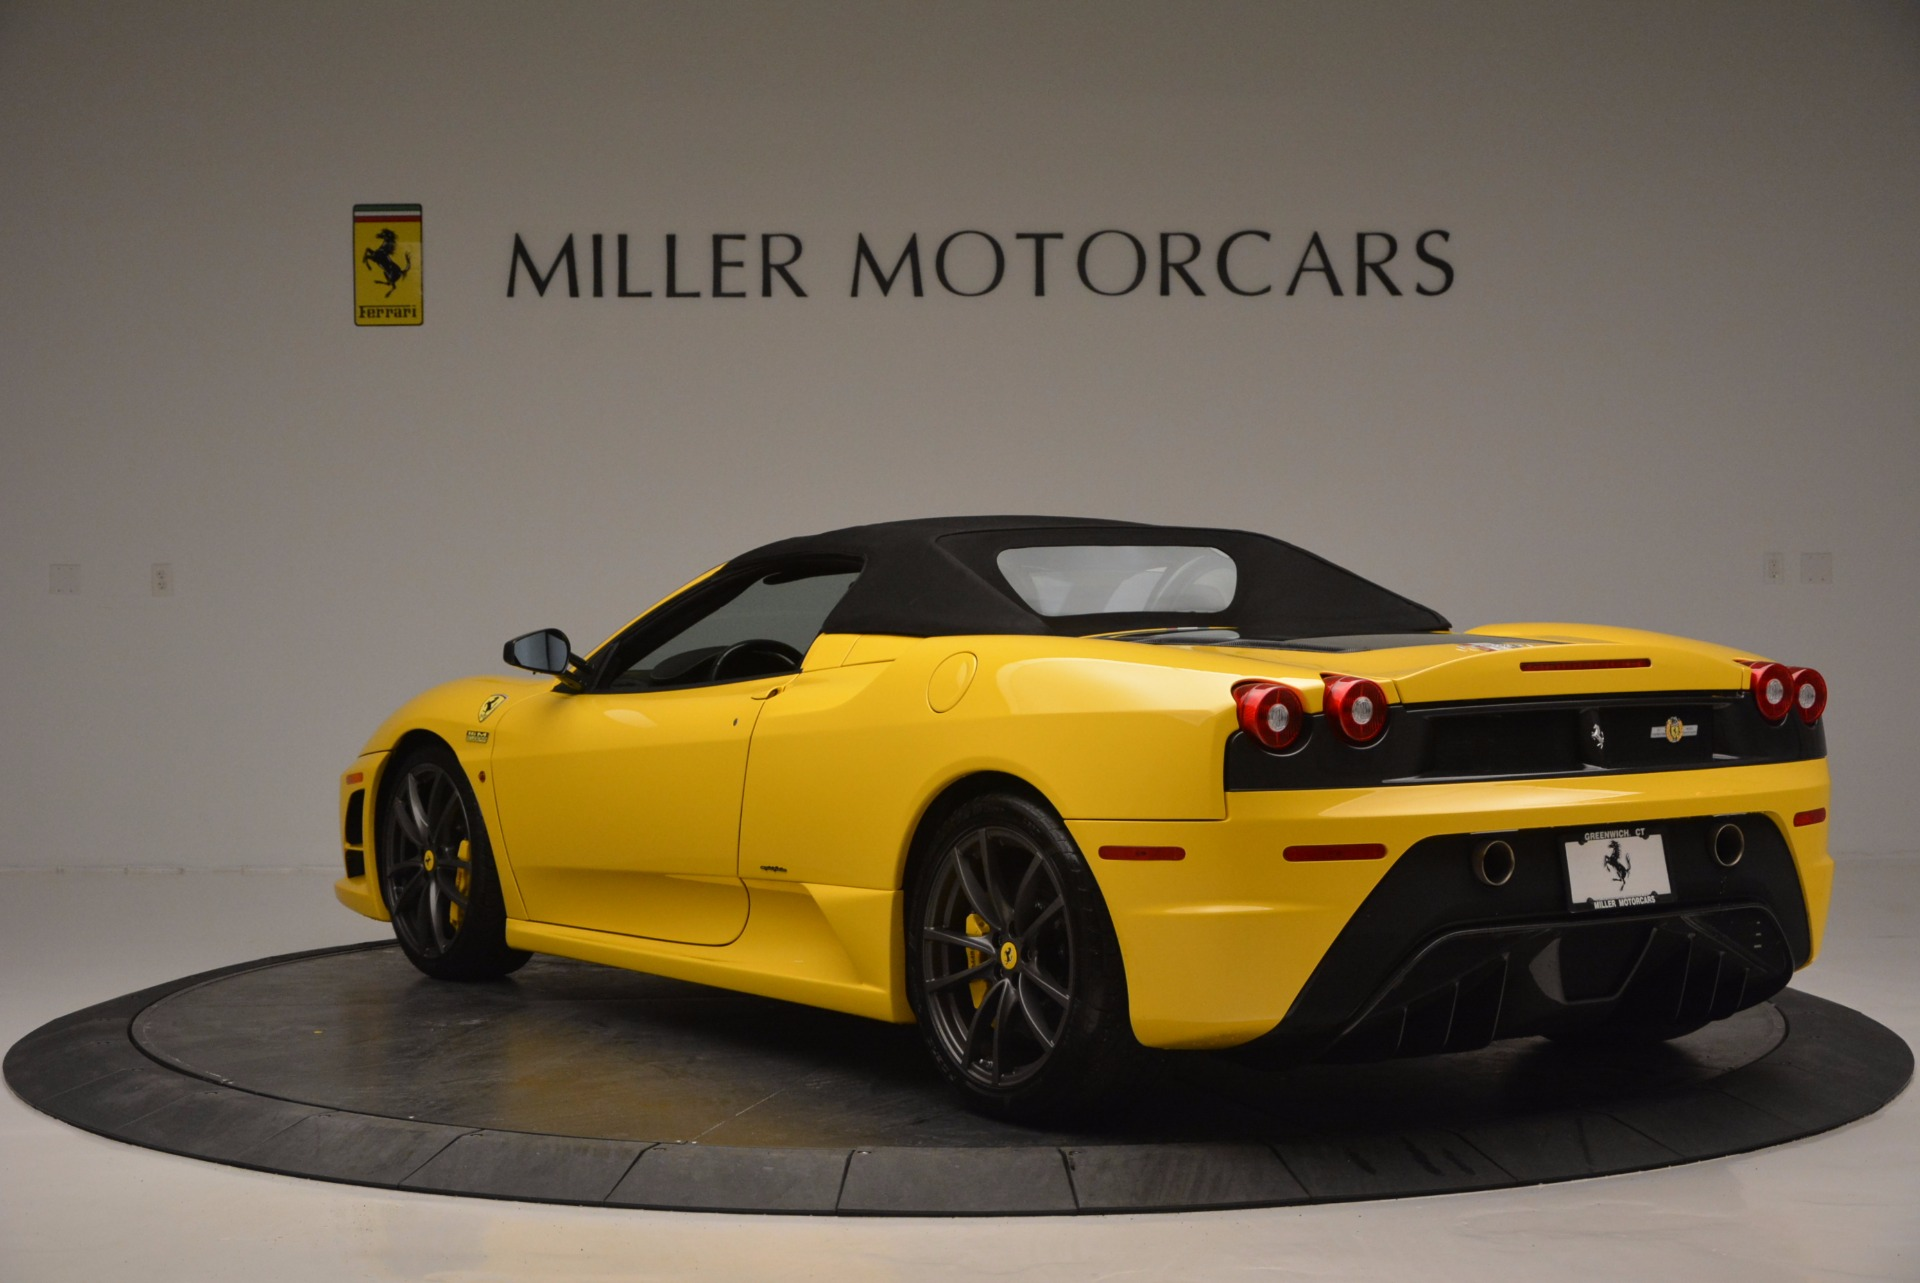 Used 2009 Ferrari F430 Scuderia 16M For Sale In Greenwich, CT 856_p17